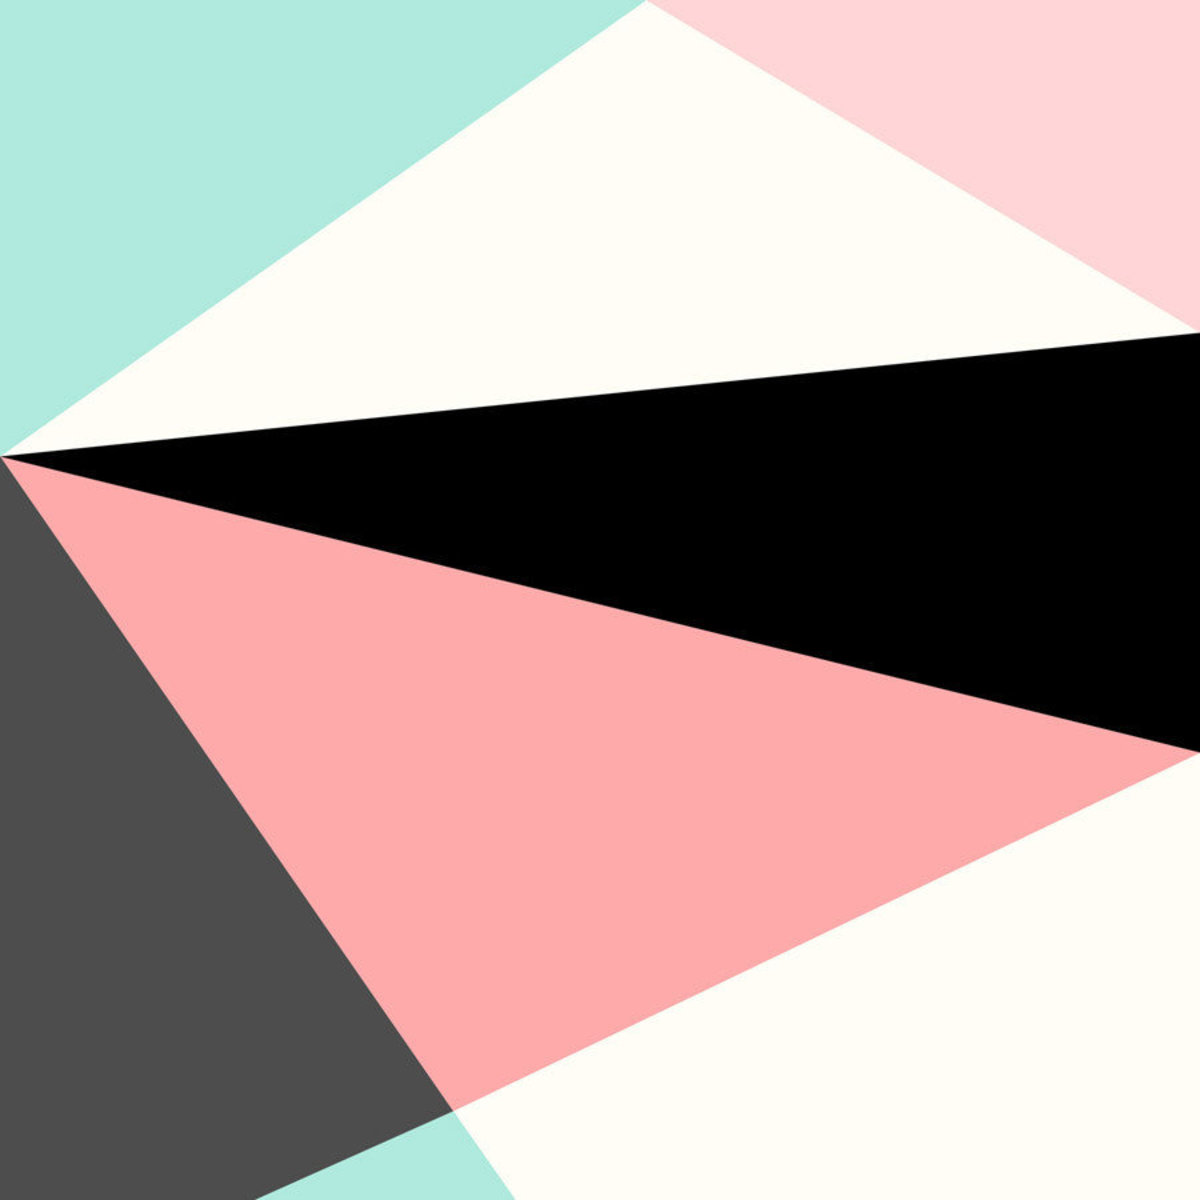 geometric design with pastel tones, simplistic lines and bold color blocks Sample